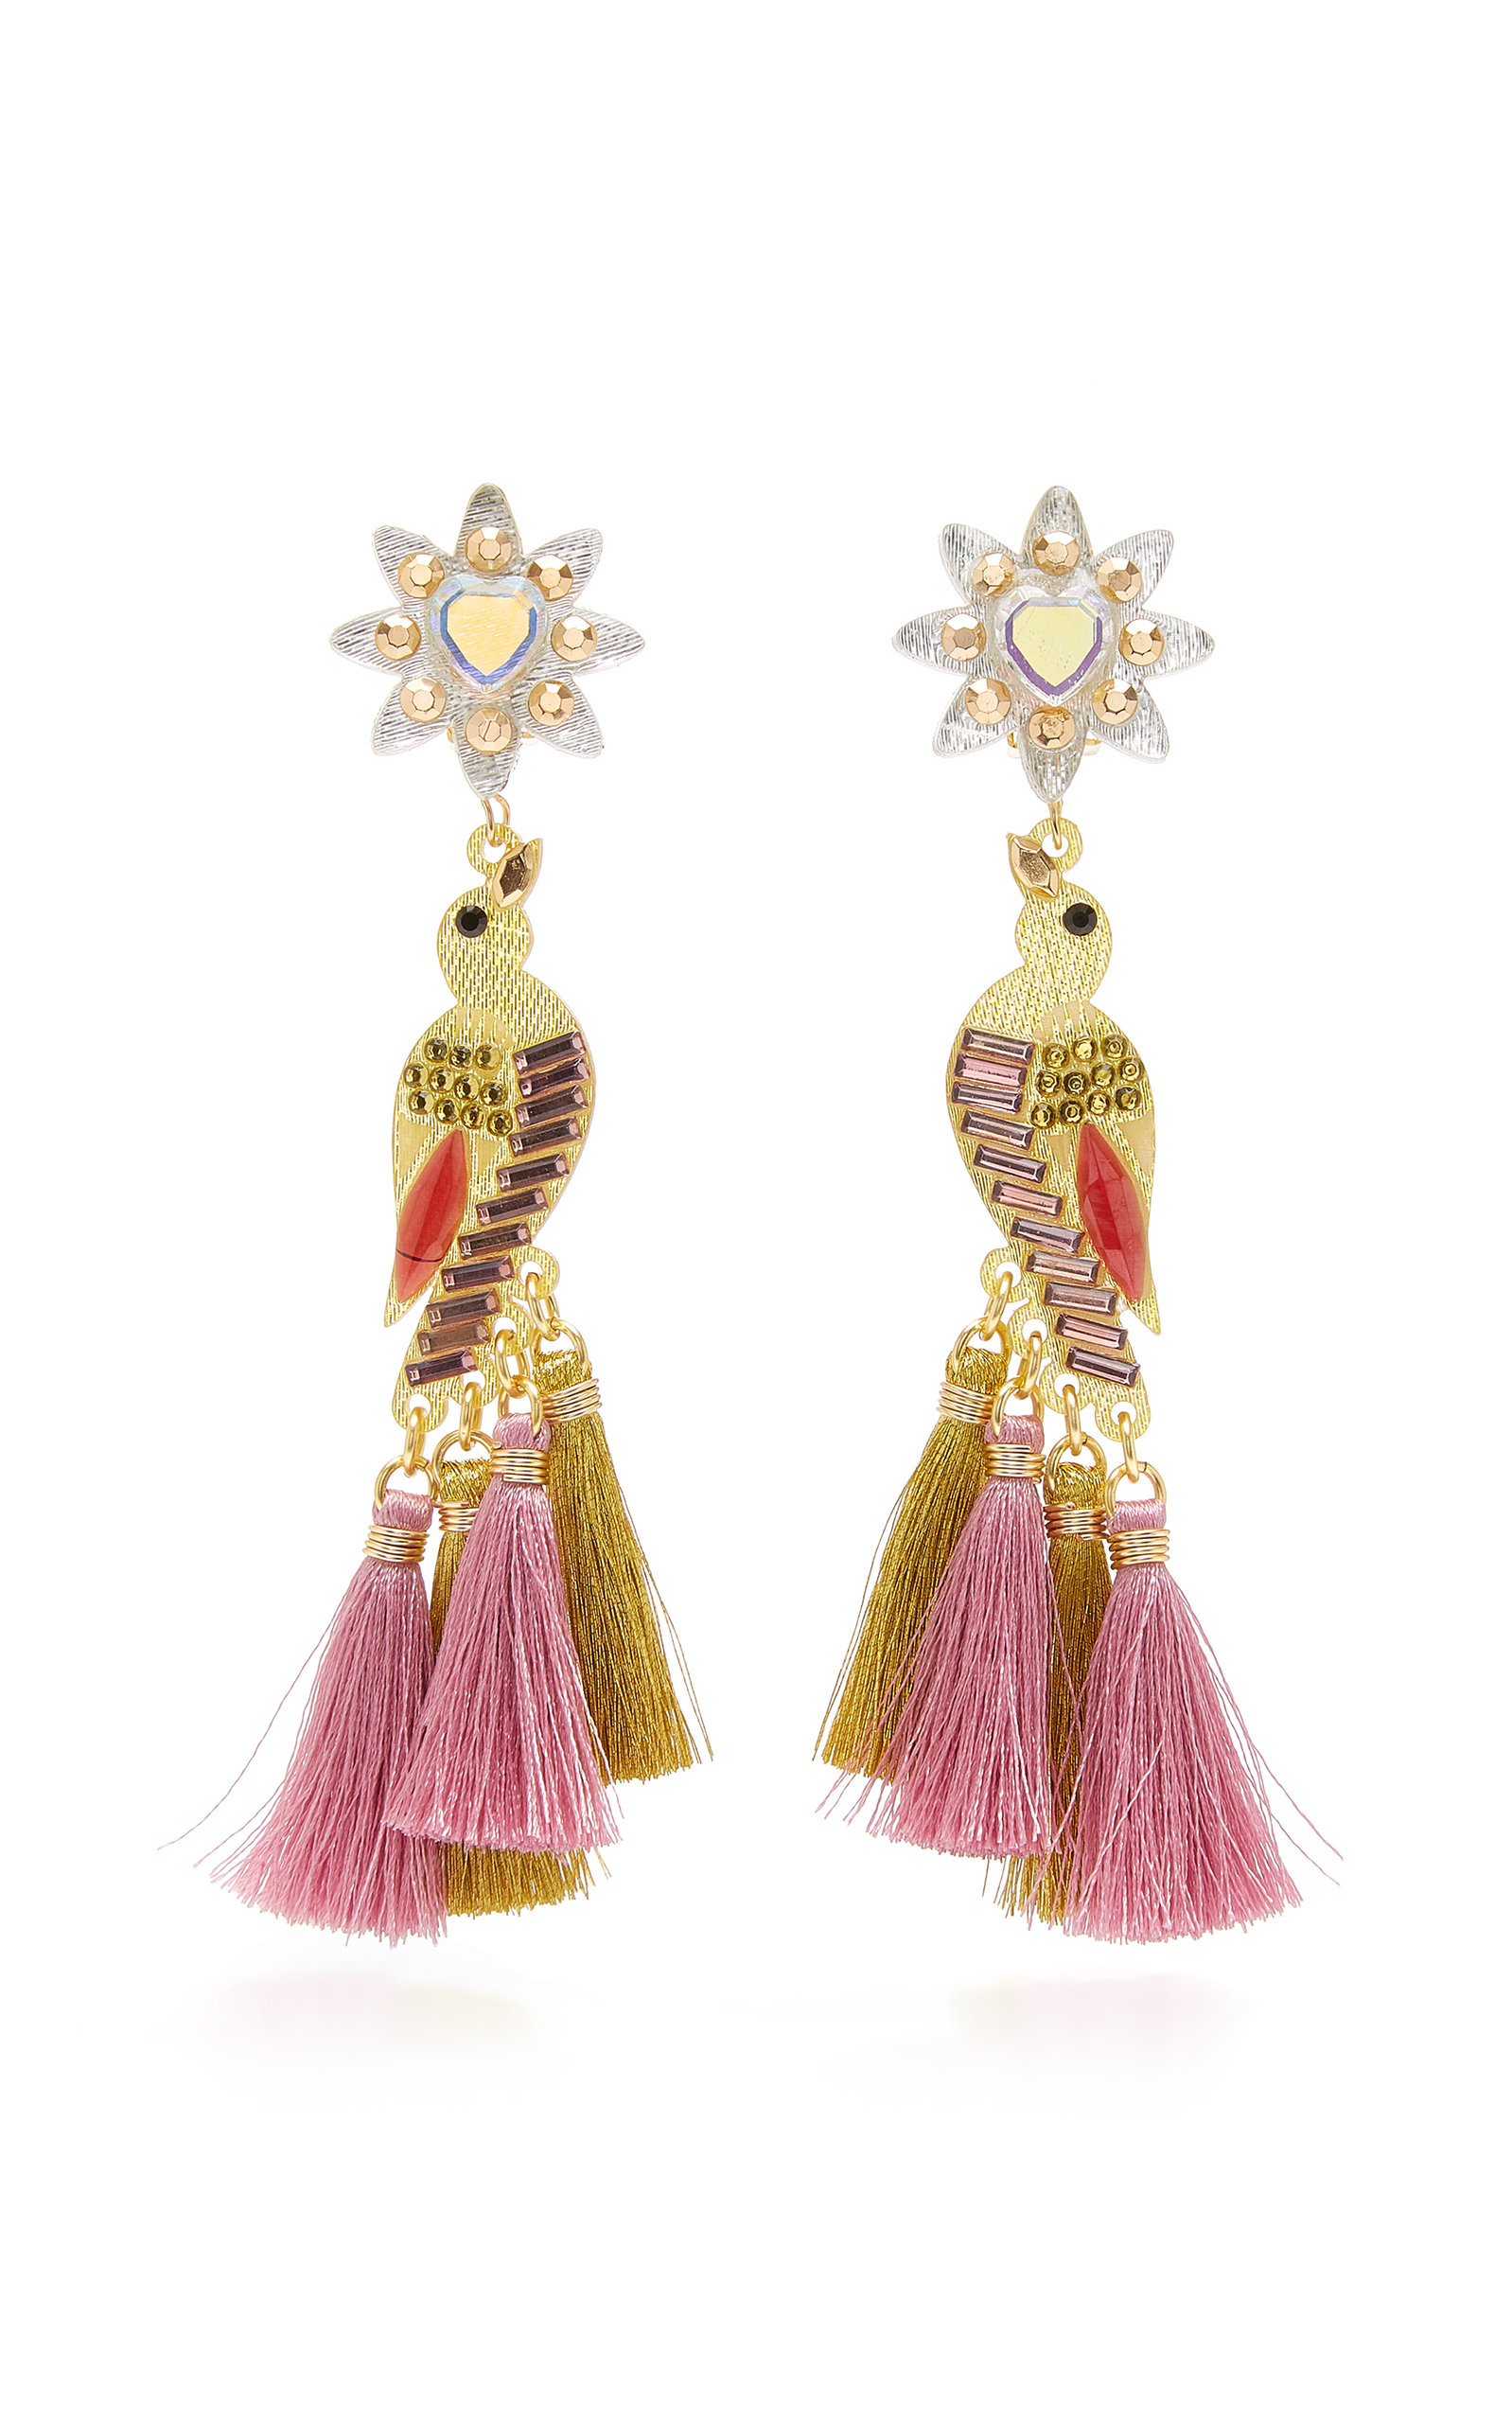 Sabanero Dorado Tasseled Gold-Plated Crystal Earrings Mercedes Salazar eLMLHCIZM